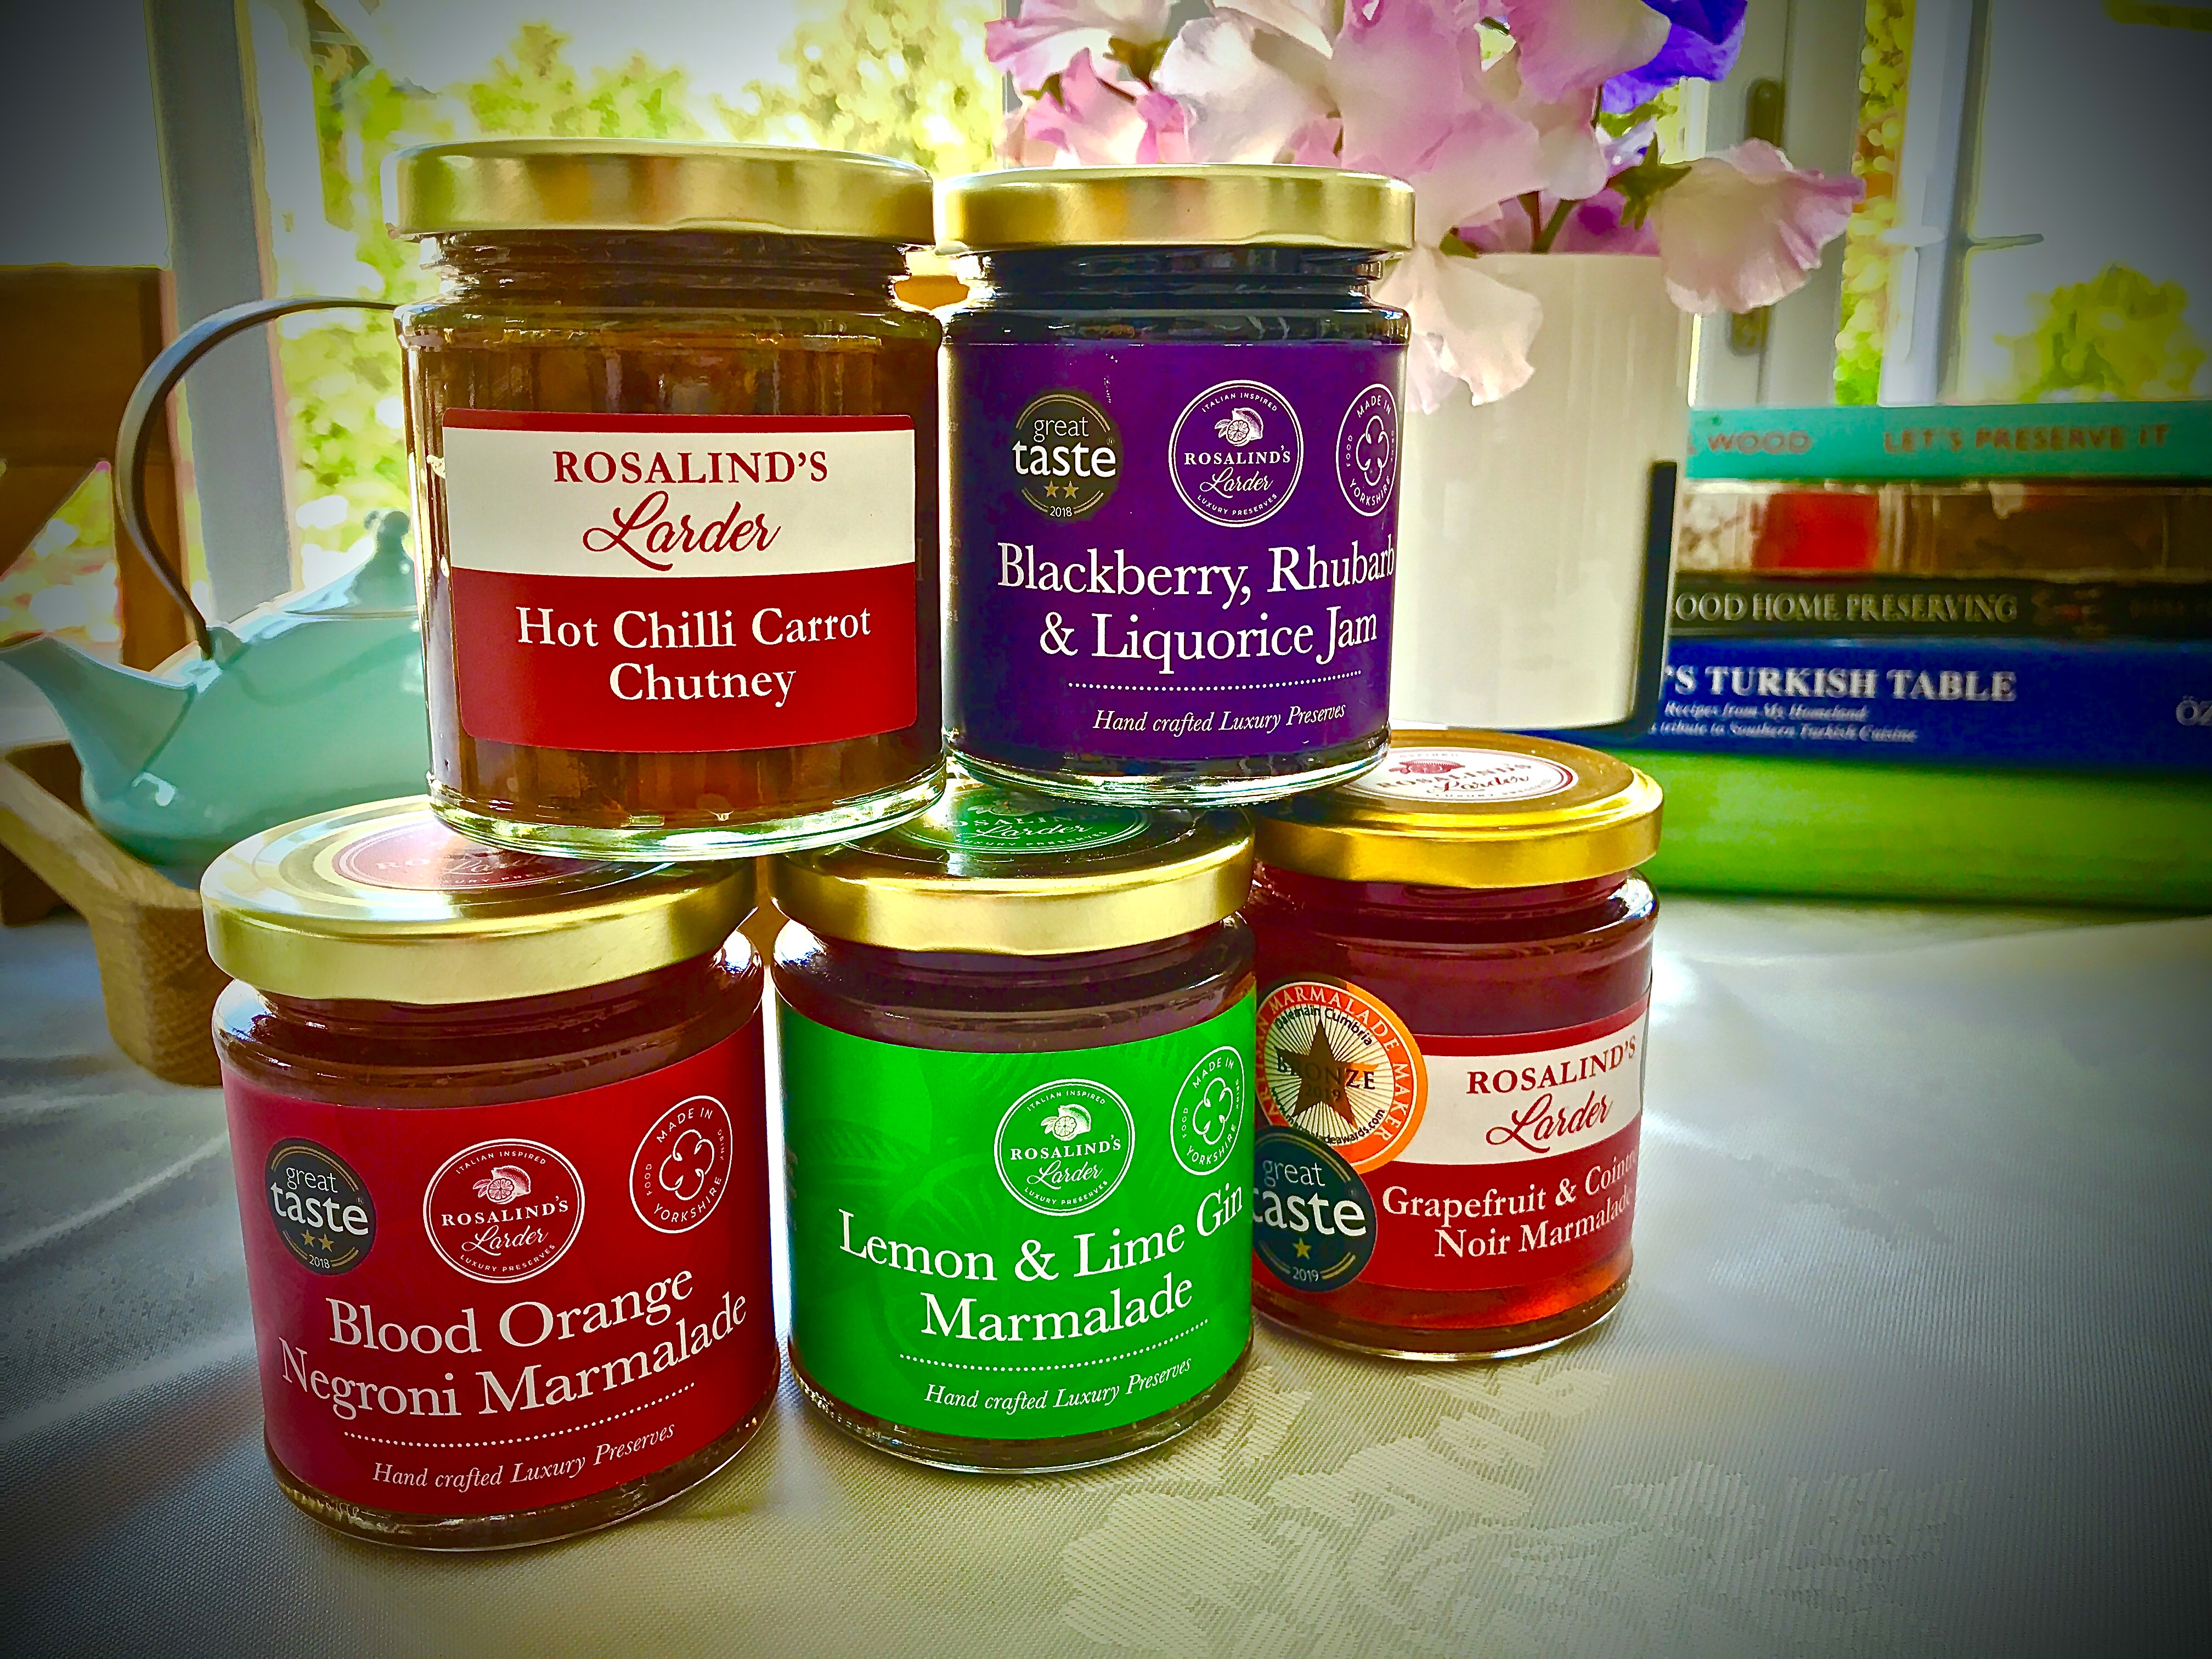 Rosalind's Award Winning Products